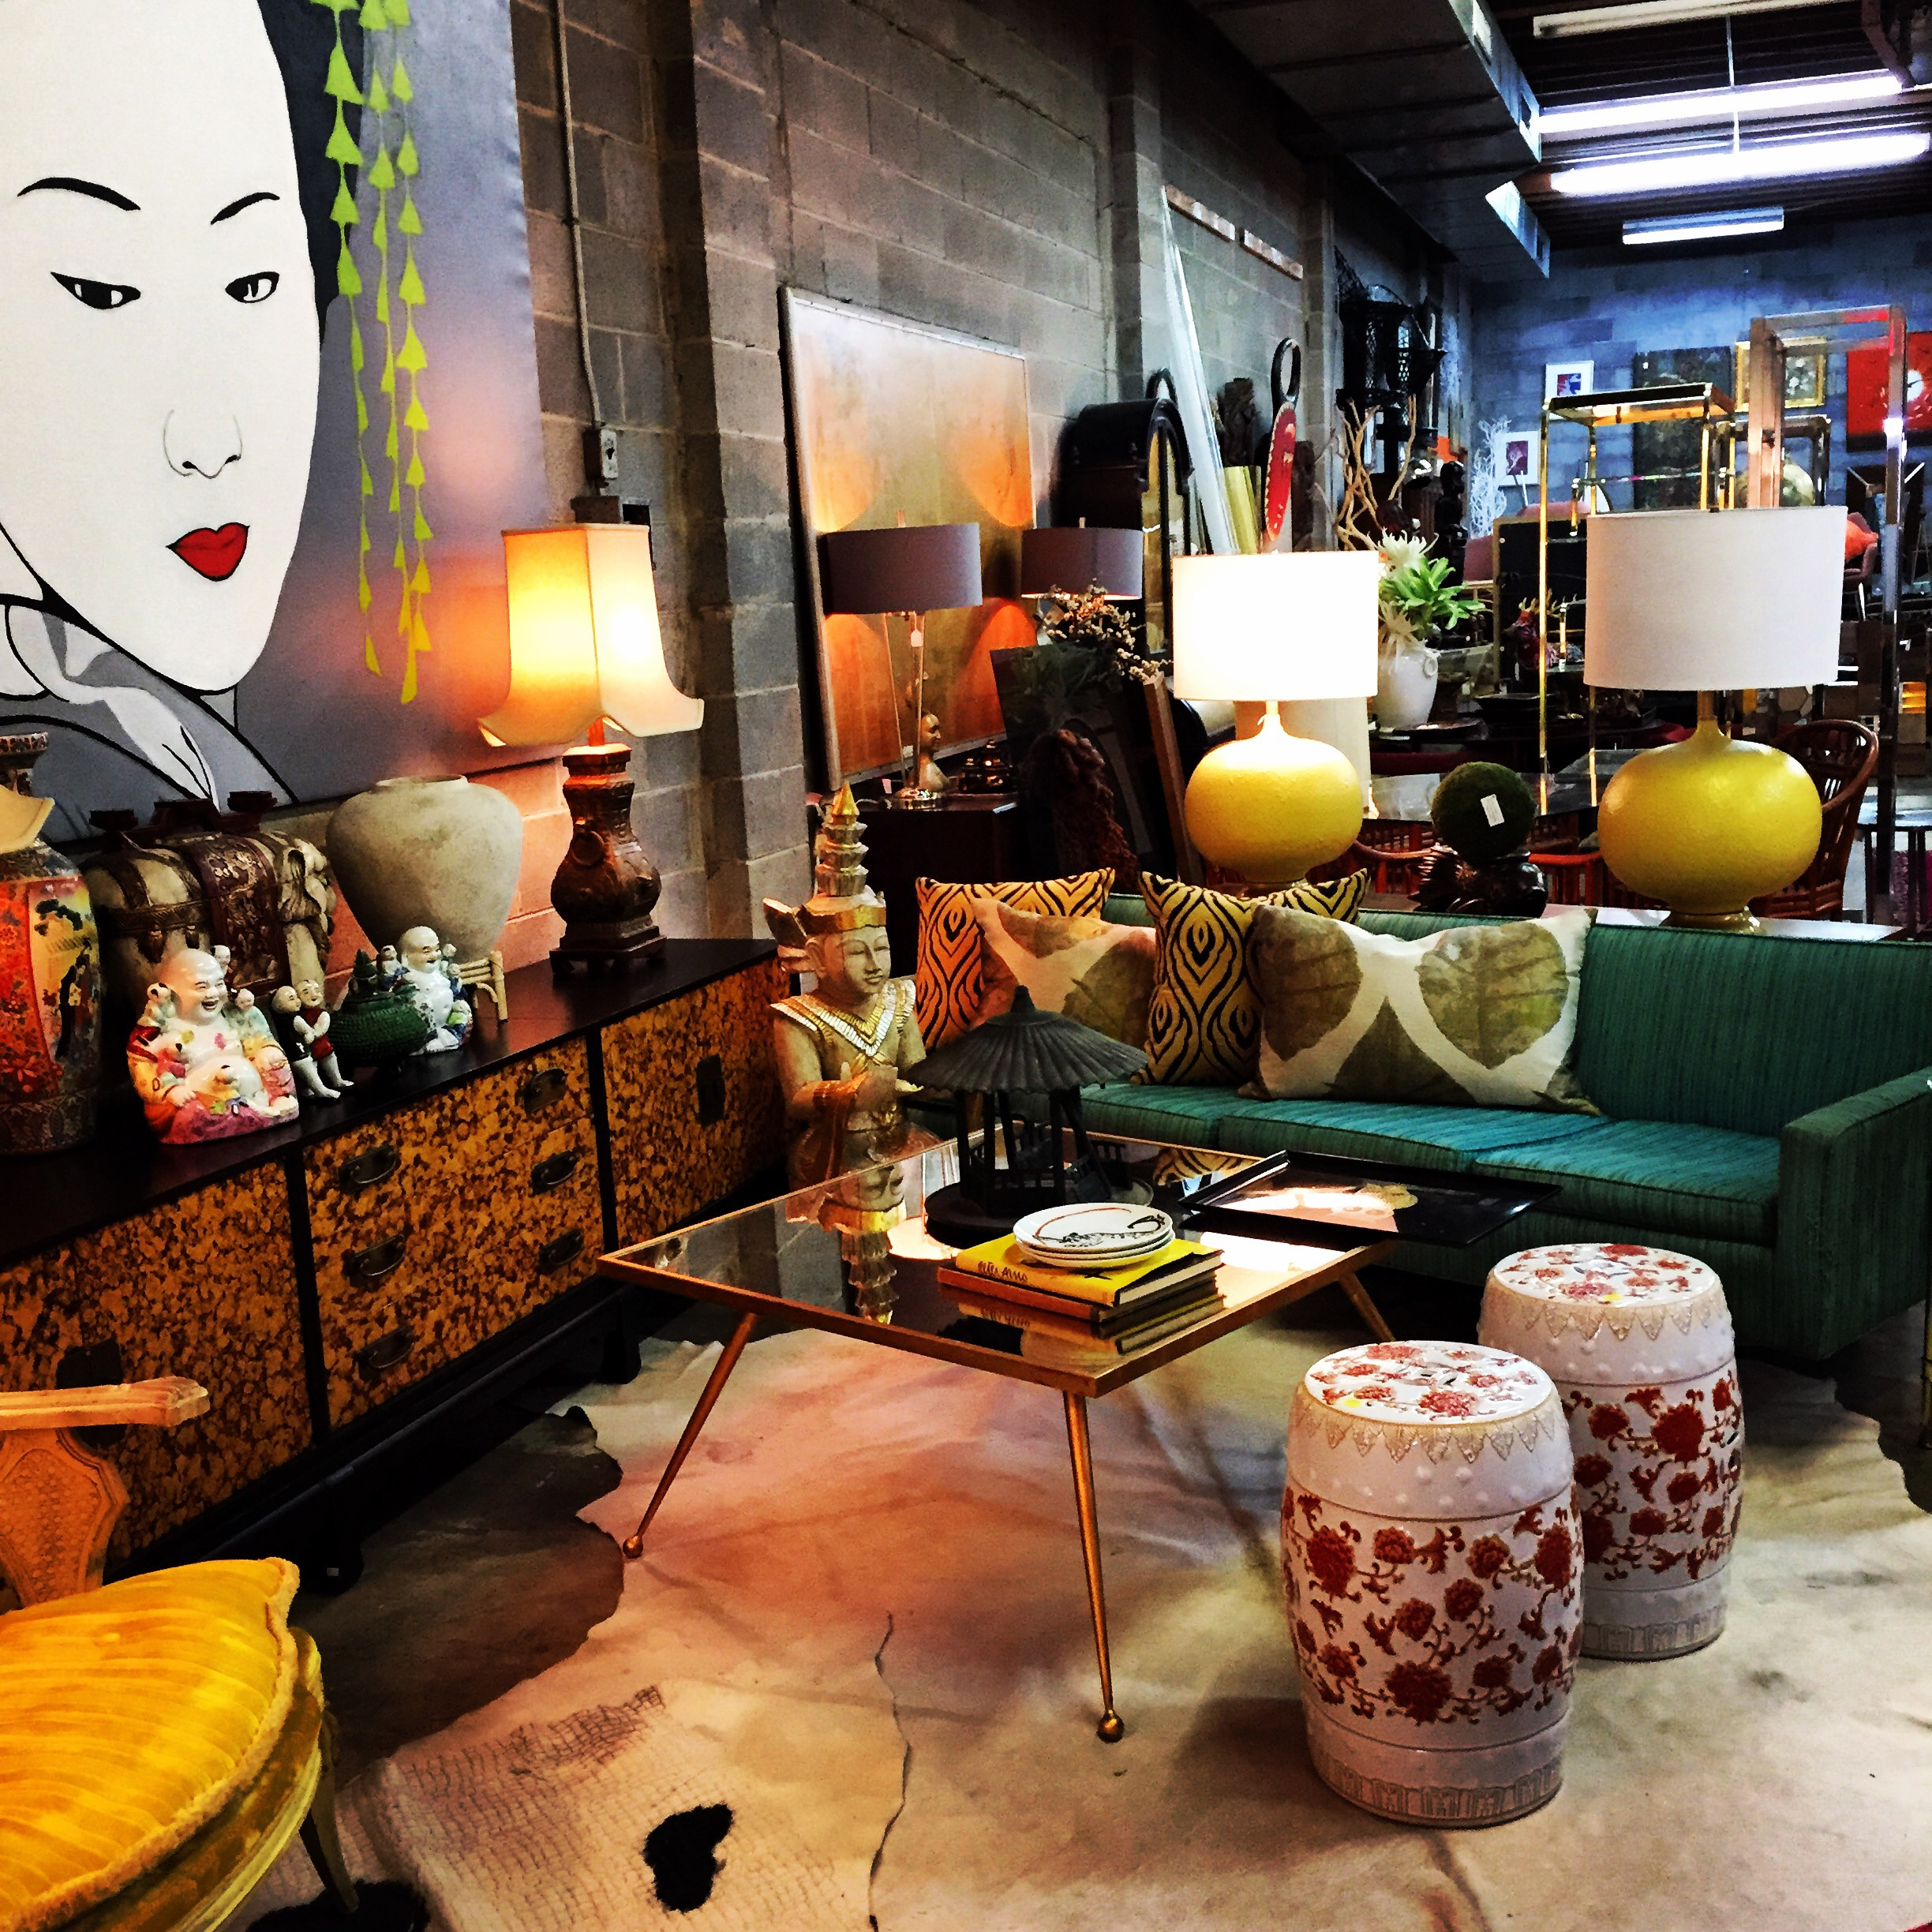 One Of My All Time Favorite Places To Find Unique Pieces Is Verve Home Furnishings At 4903 W Leigh St Owner Kim Vincze S Love For Asian Inspired Decor And